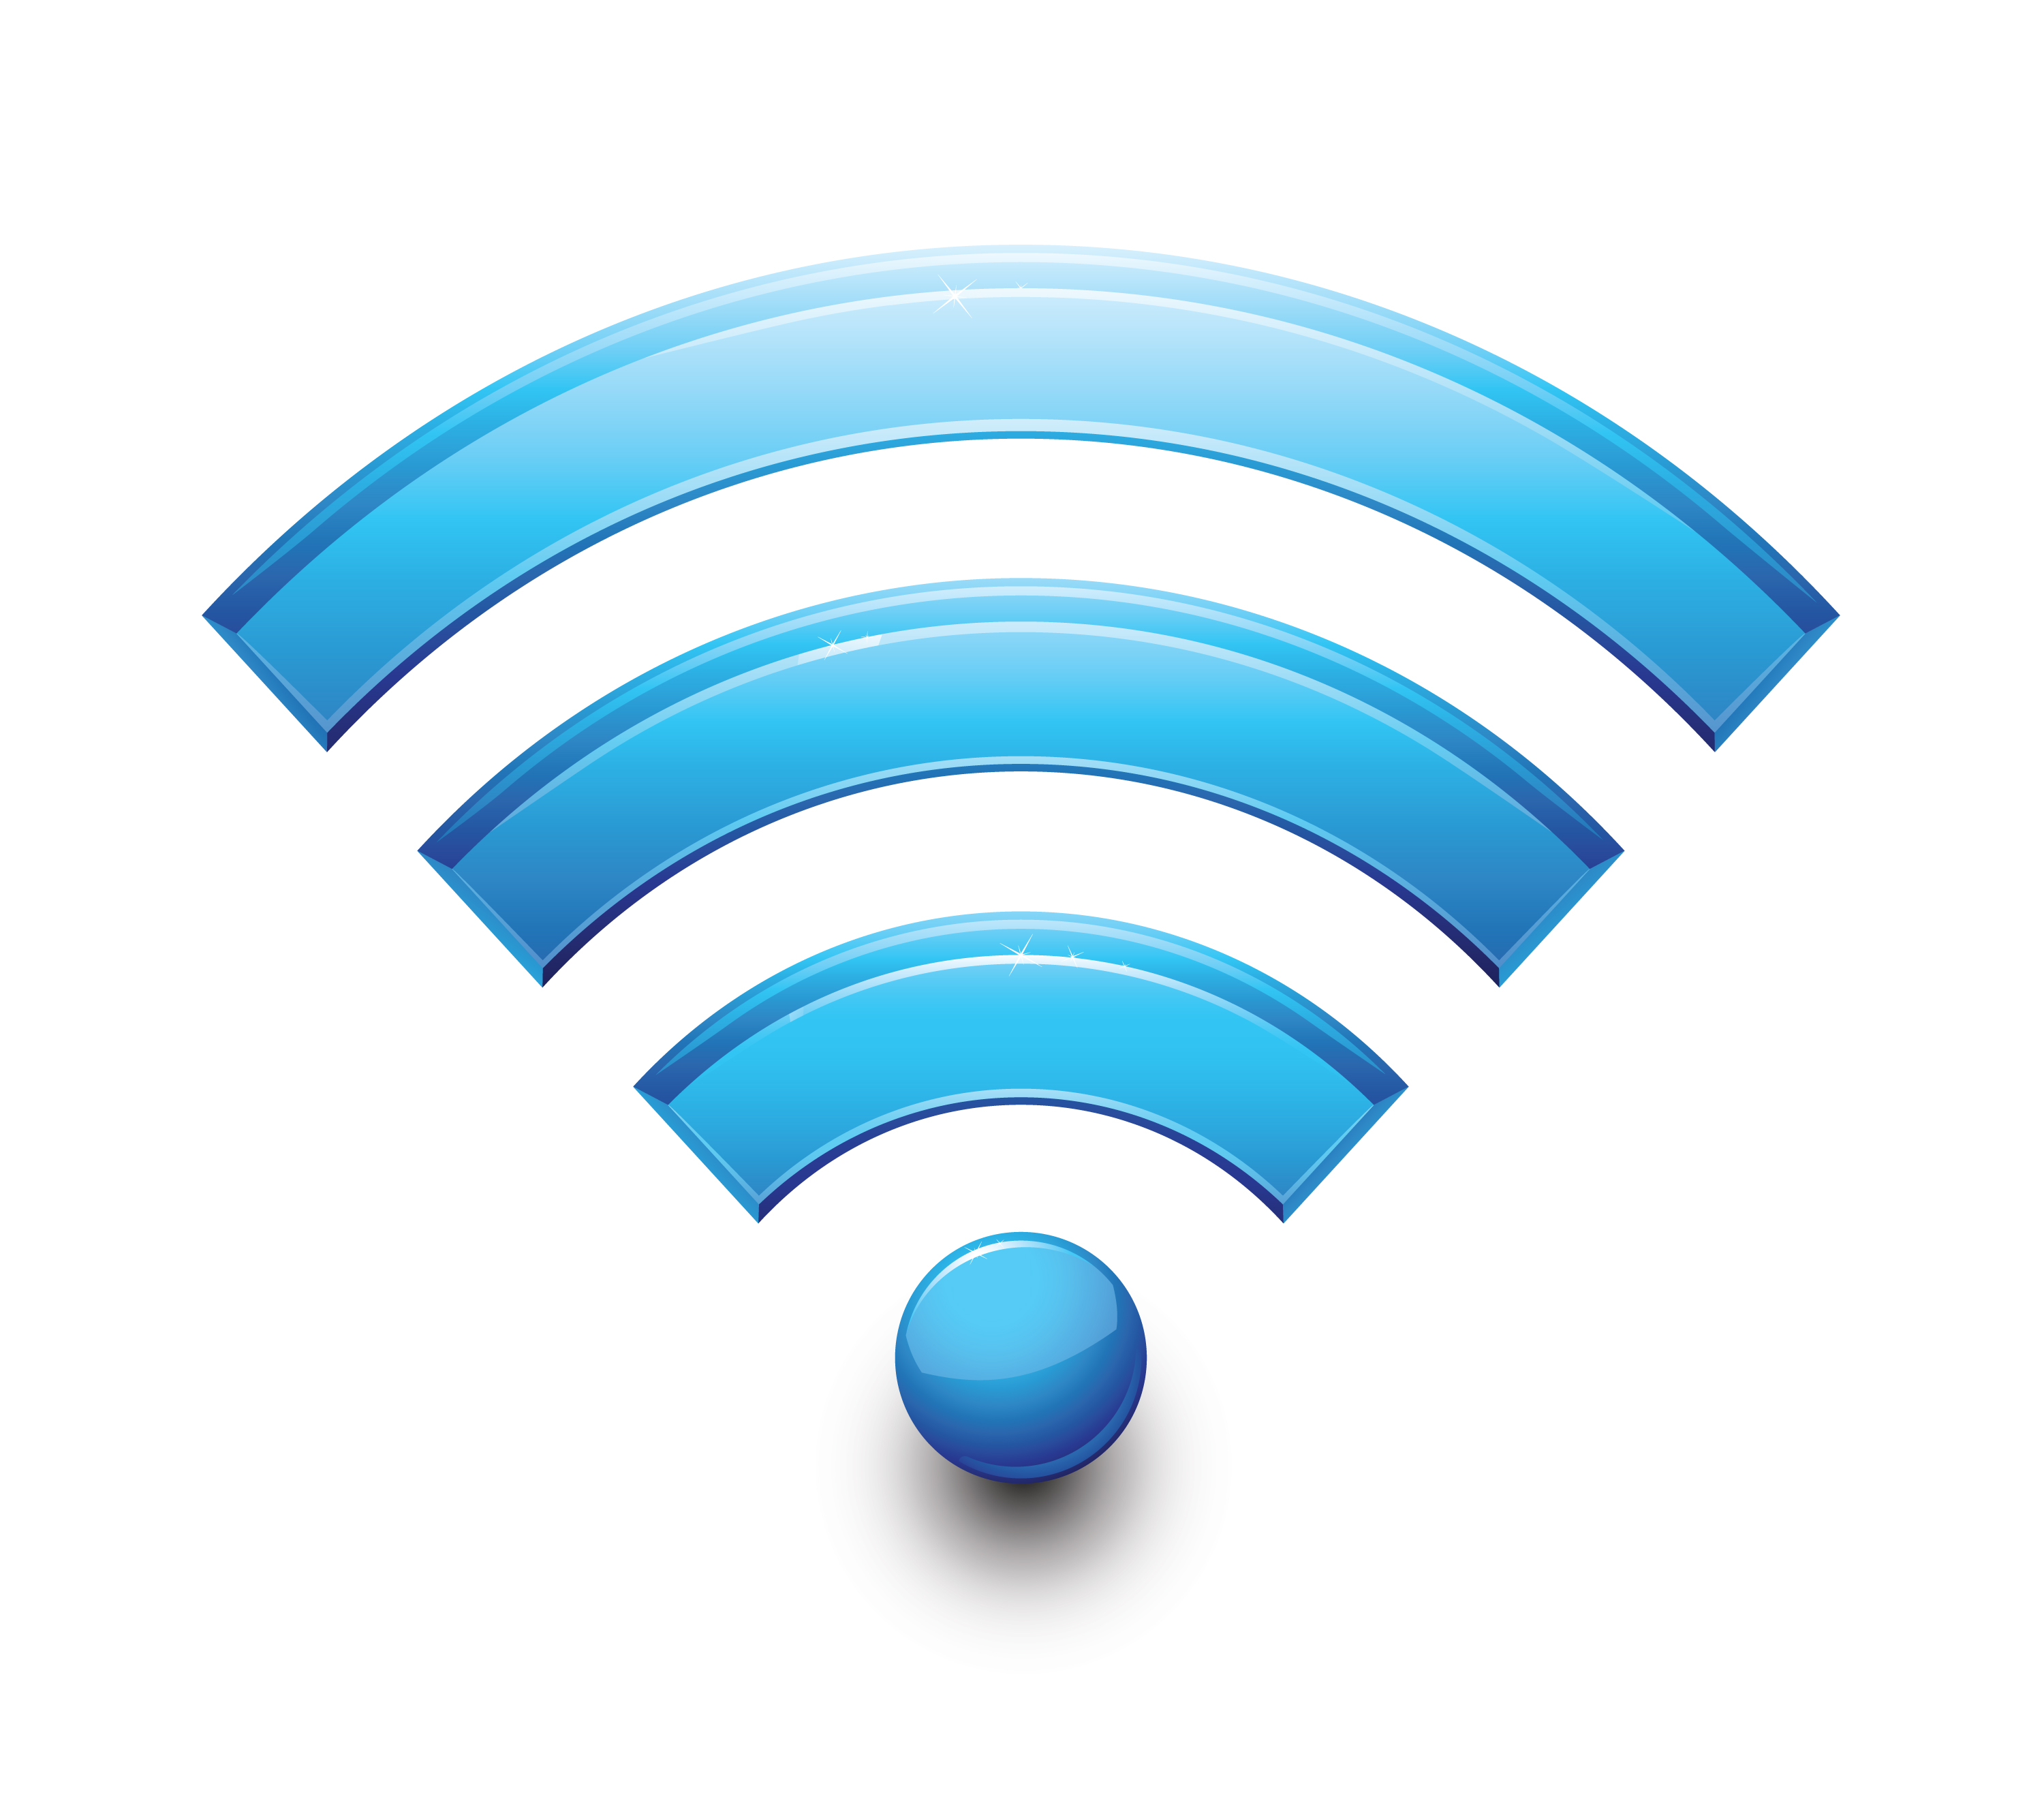 10 Places to Look for Free Wi-Fi Hotspots